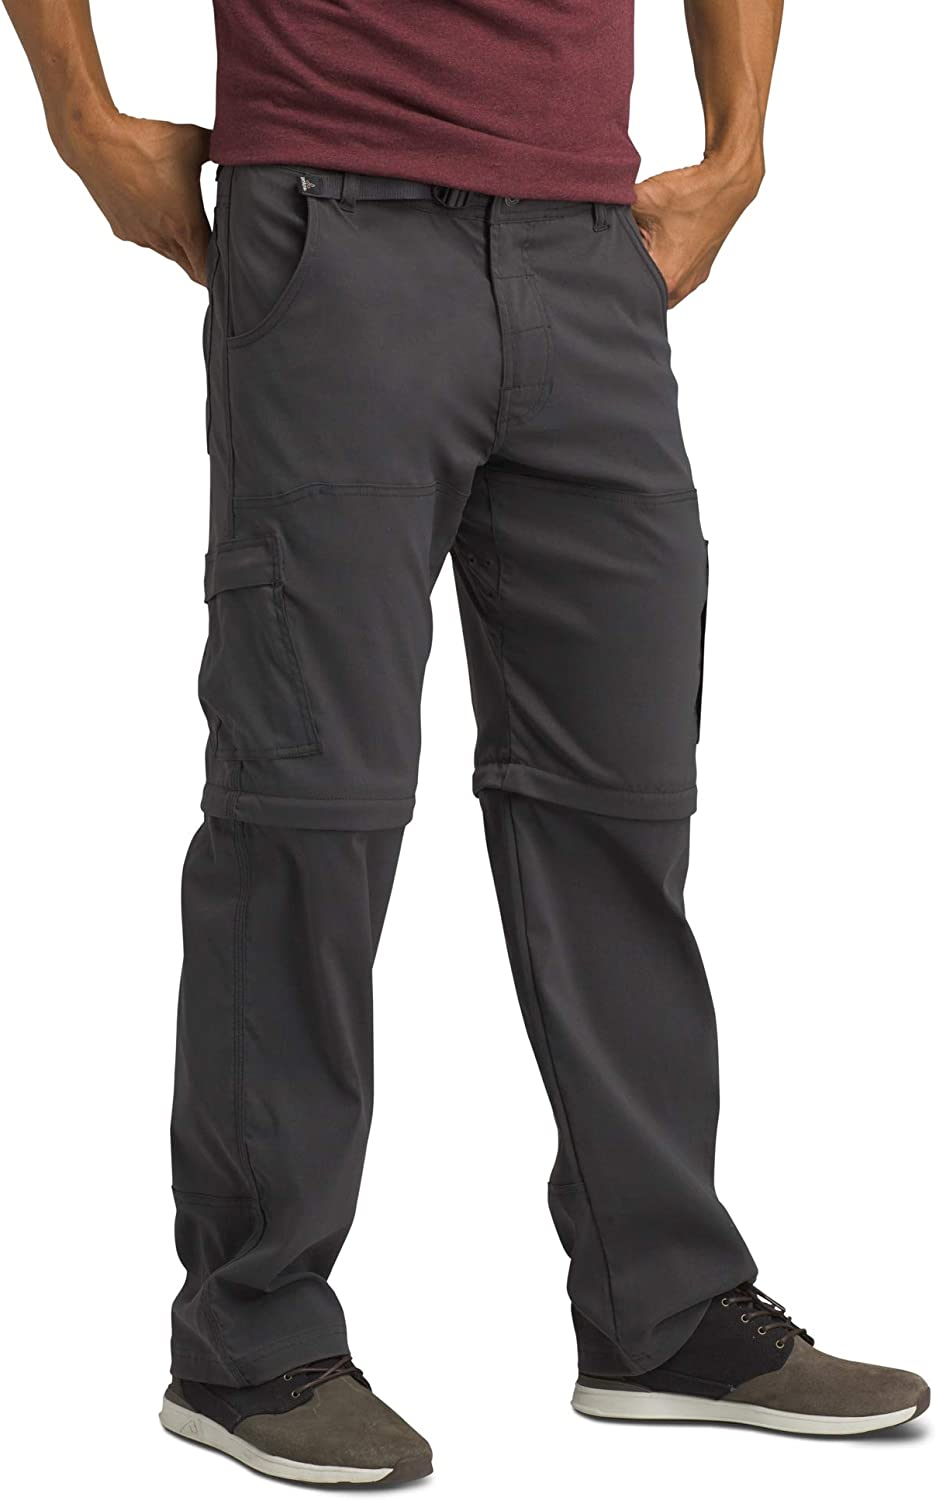 prAna - Men's Stretch Zion Convertible Water-Repellent Pants for Hiking and Everyday Wear